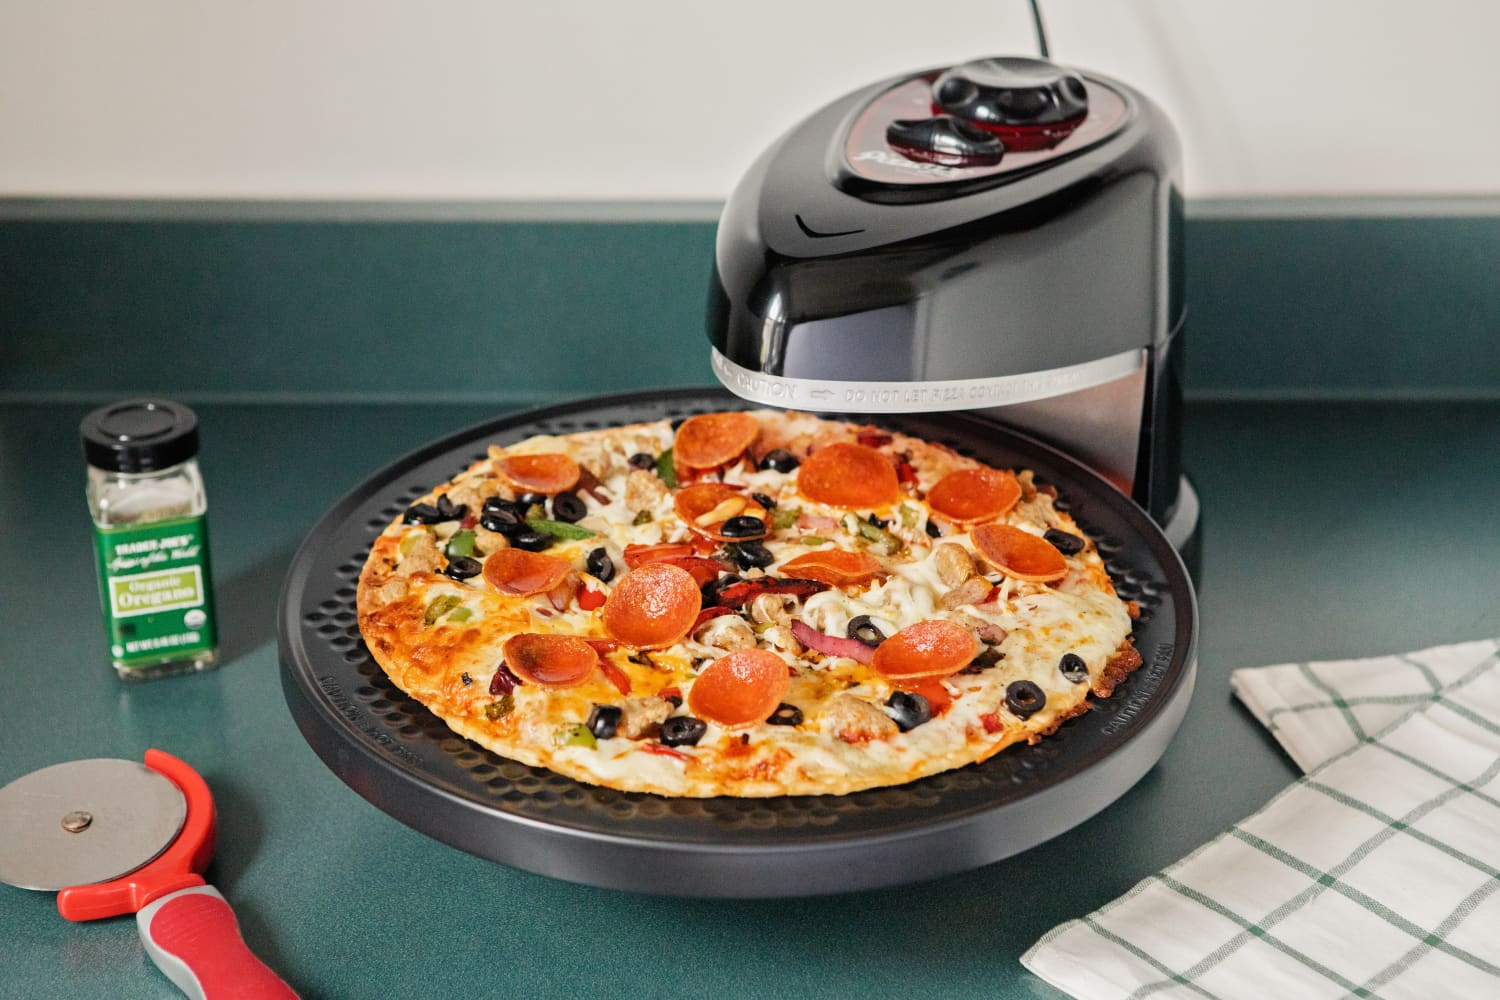 We Tried the $50 Pizza Oven That Amazon Shoppers Are Obsessed With